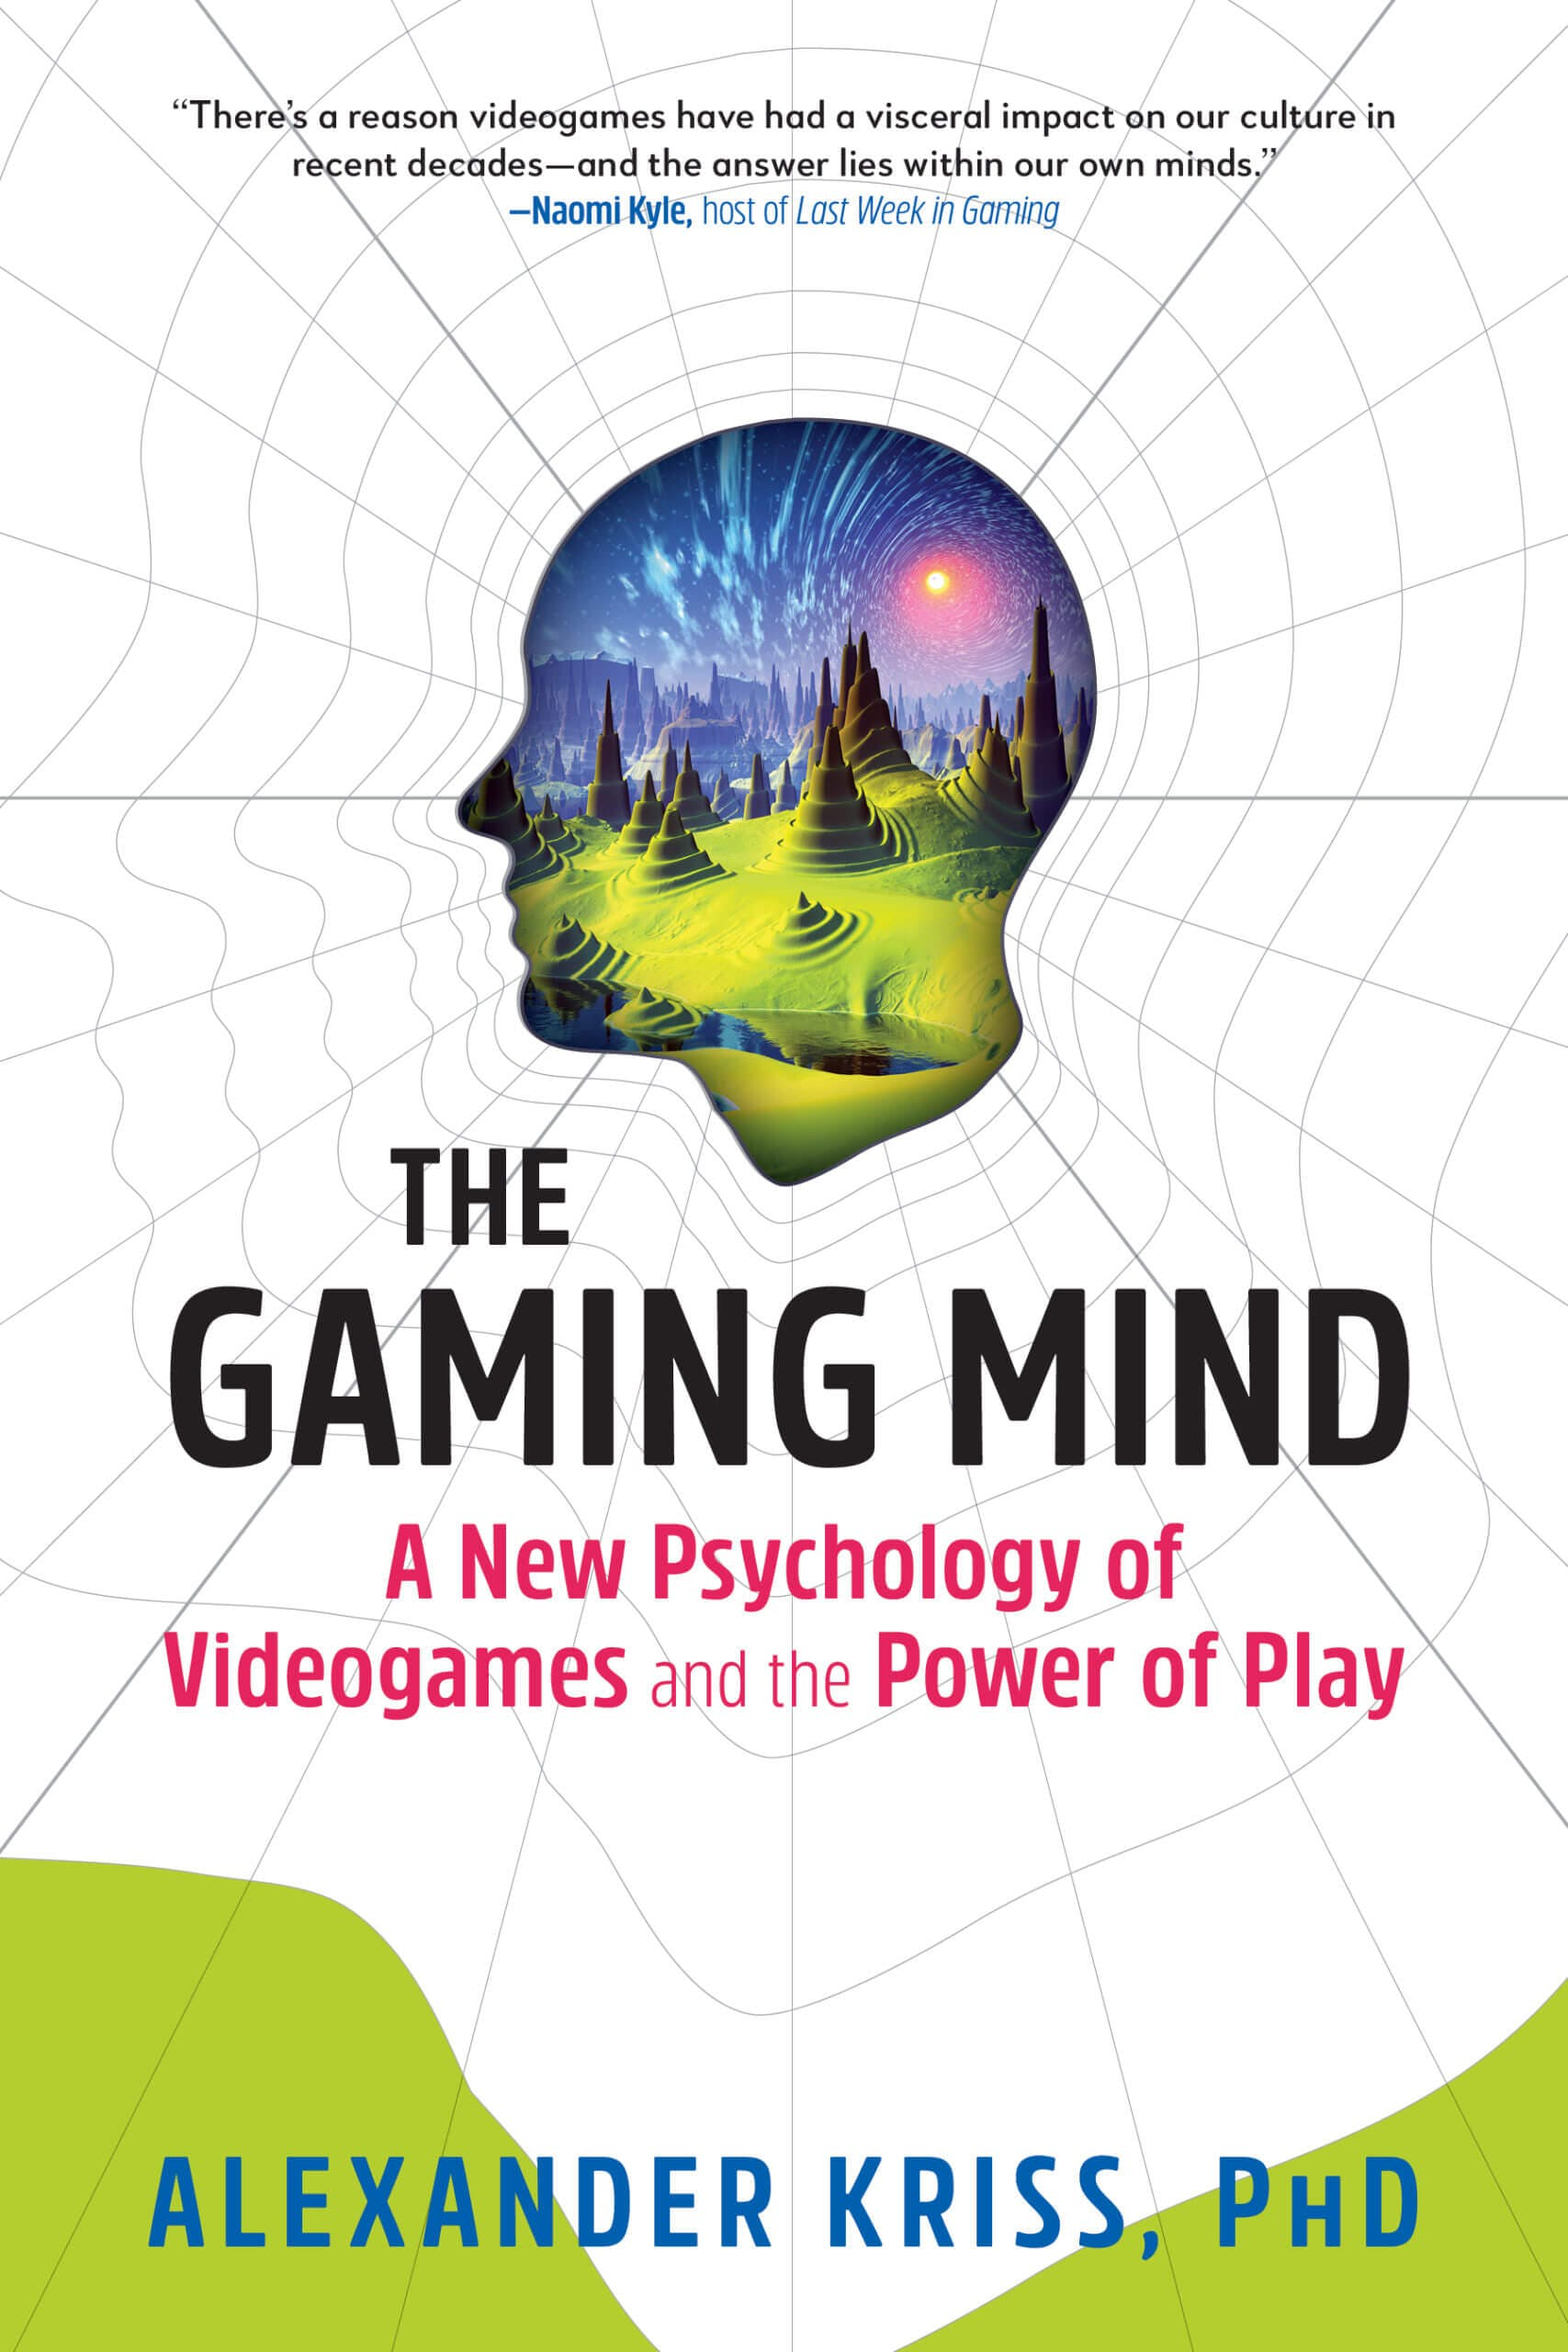 The Gaming Mind Alexander Kriss